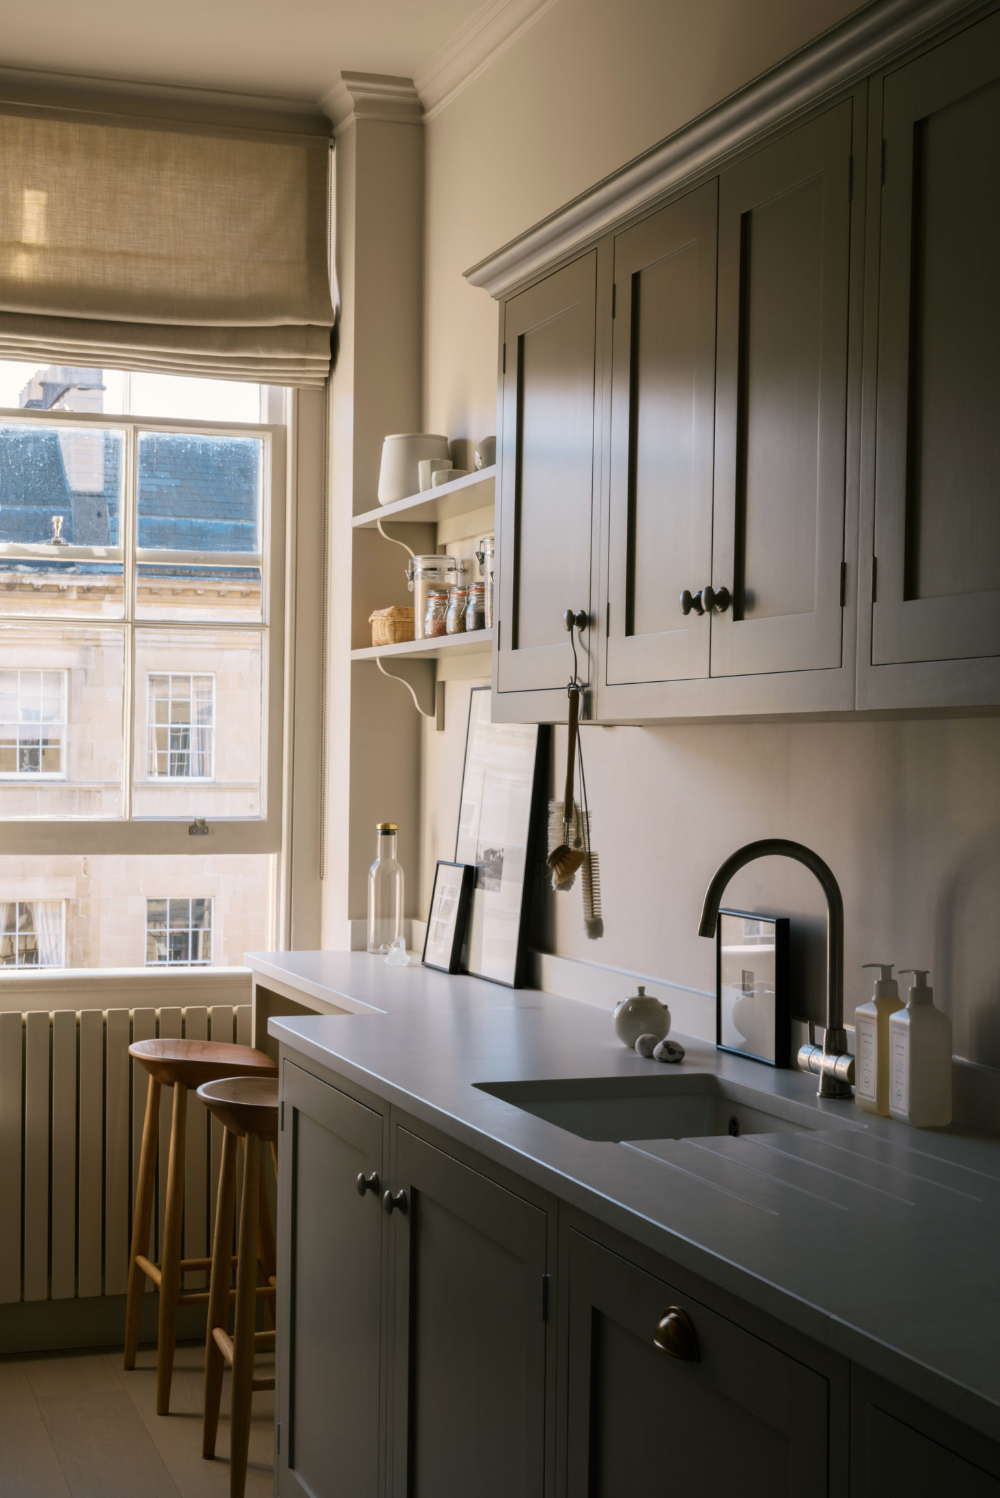 Shaker Galley Kitchen: a Stylish Small Design by deVol for the Founders of Cereal Magazine